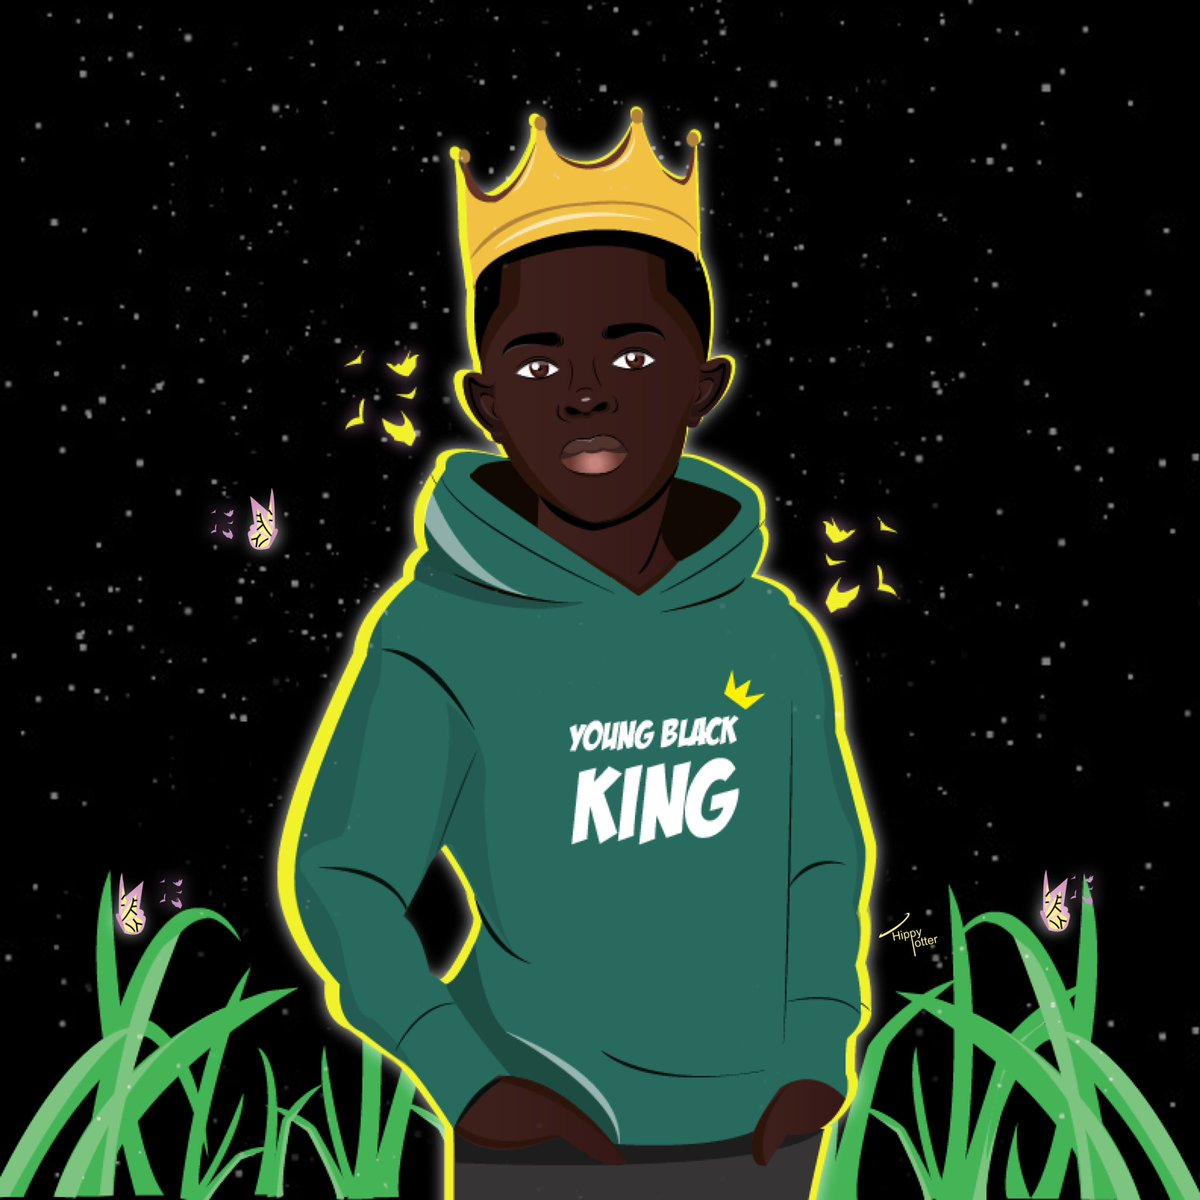 Flipthescript young black king hm illustrated by mepic twitter com pk8mmmdx8f